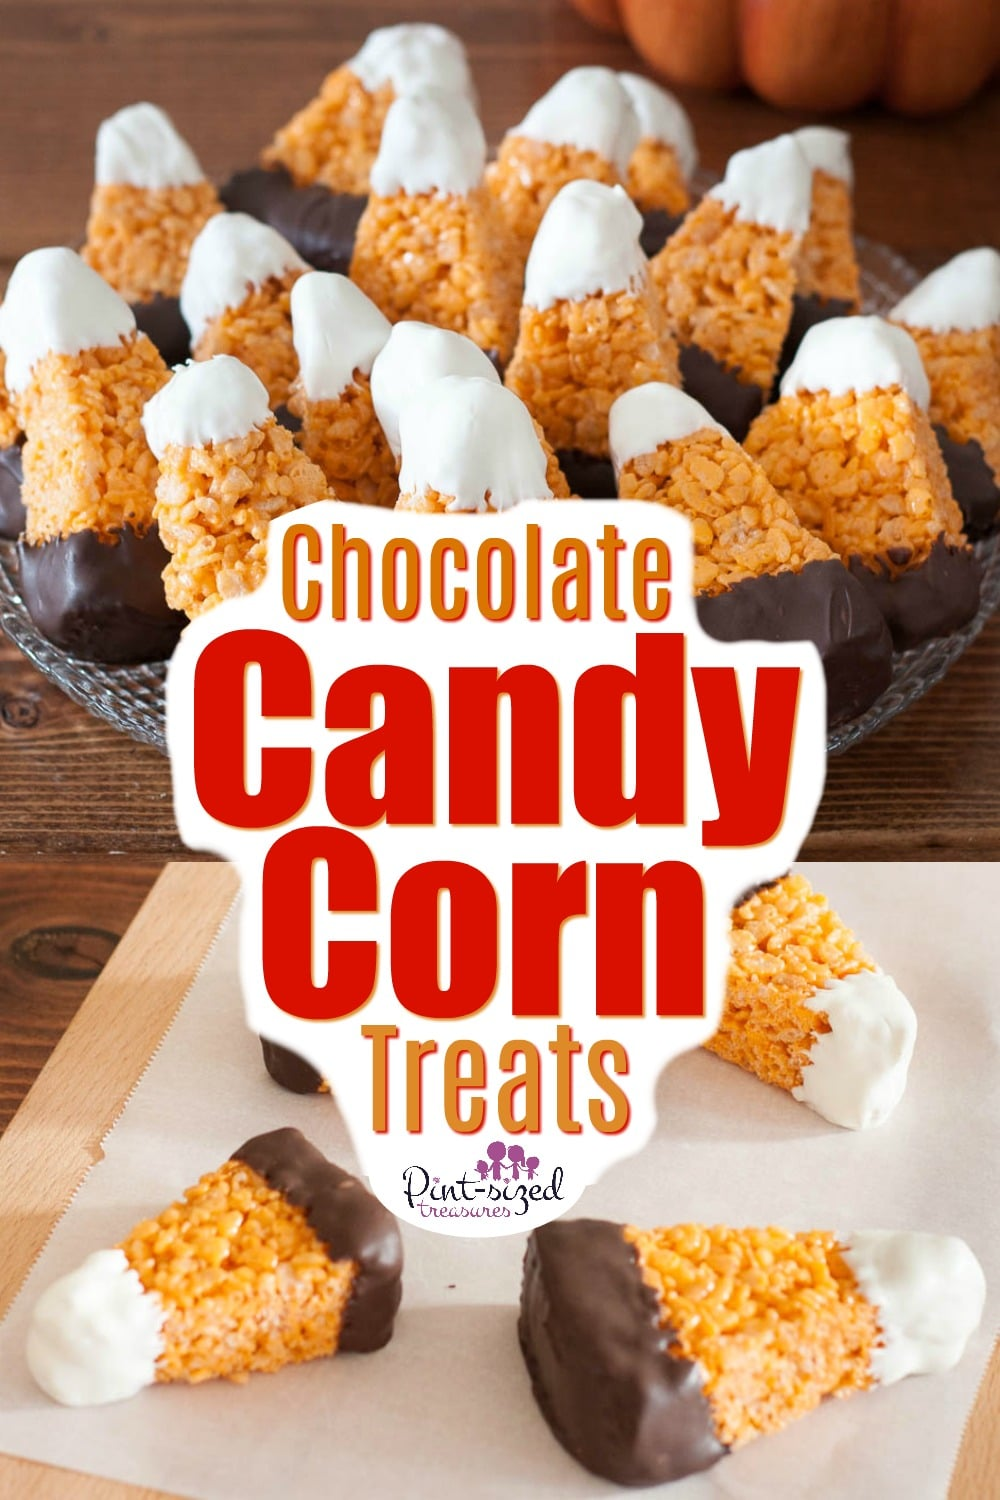 Chocolate Candy Corn Rice Krispy Treats Recipe